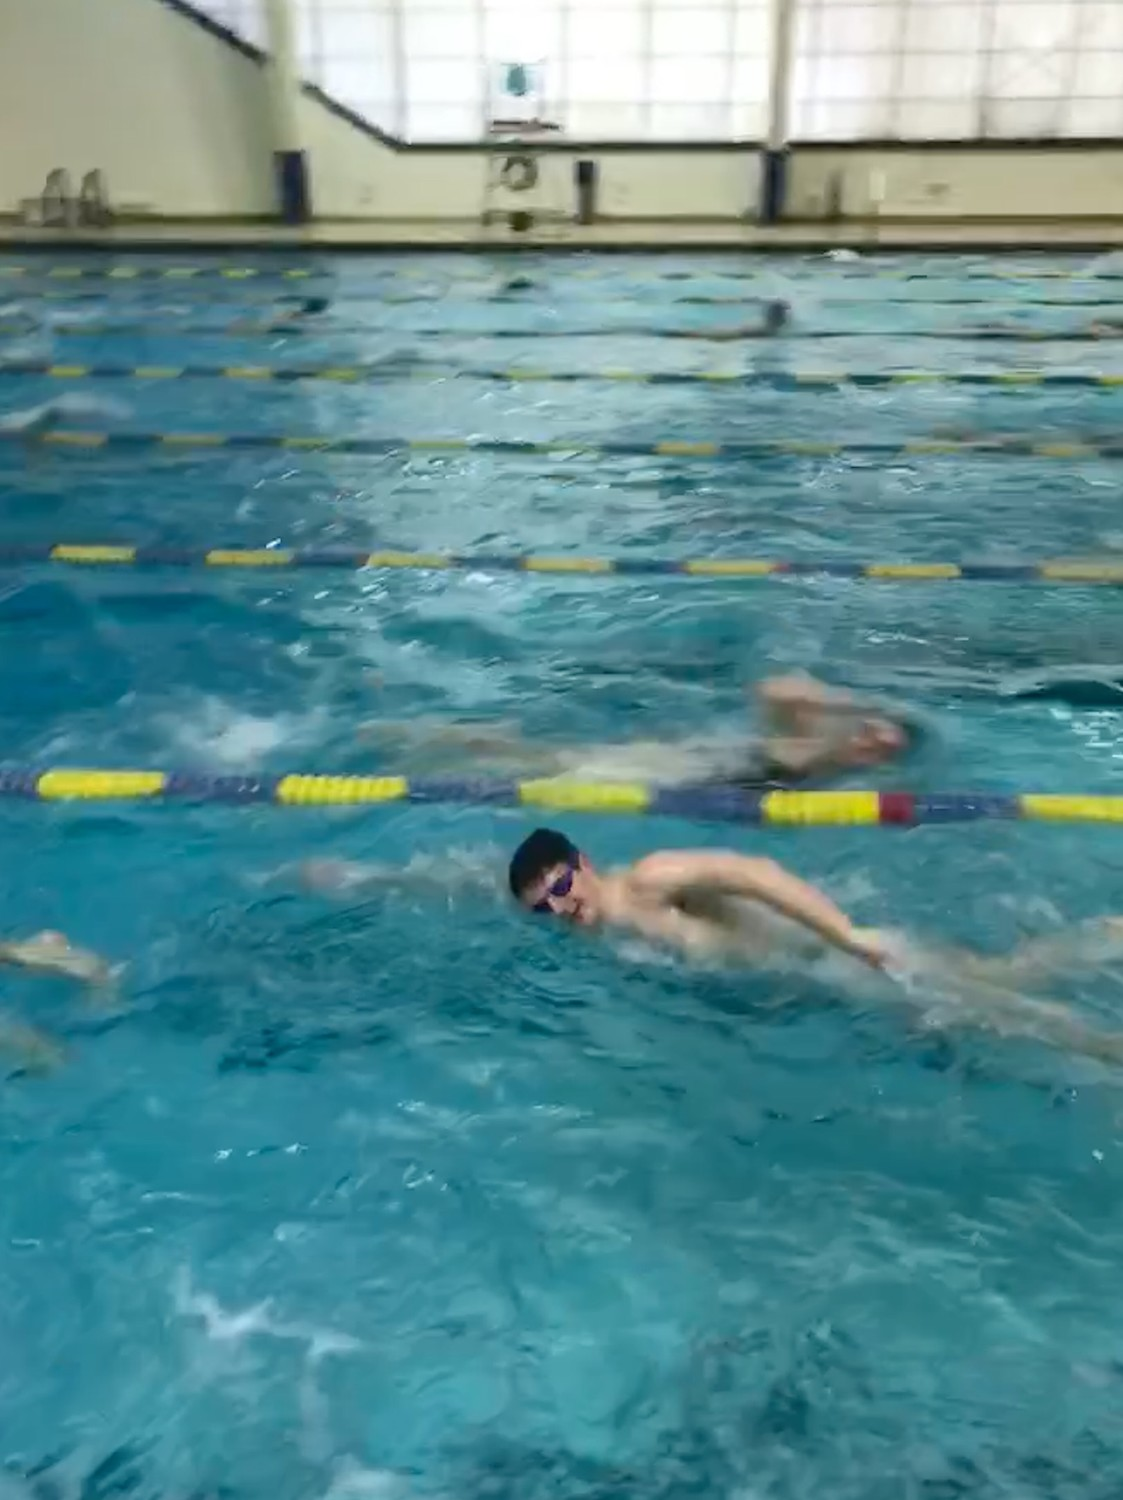 Kyle Bergin, a senior, has been swimming since he was 7, and was instrumental in urging the Lynbrook Board of Education to create a swim team three years ago.